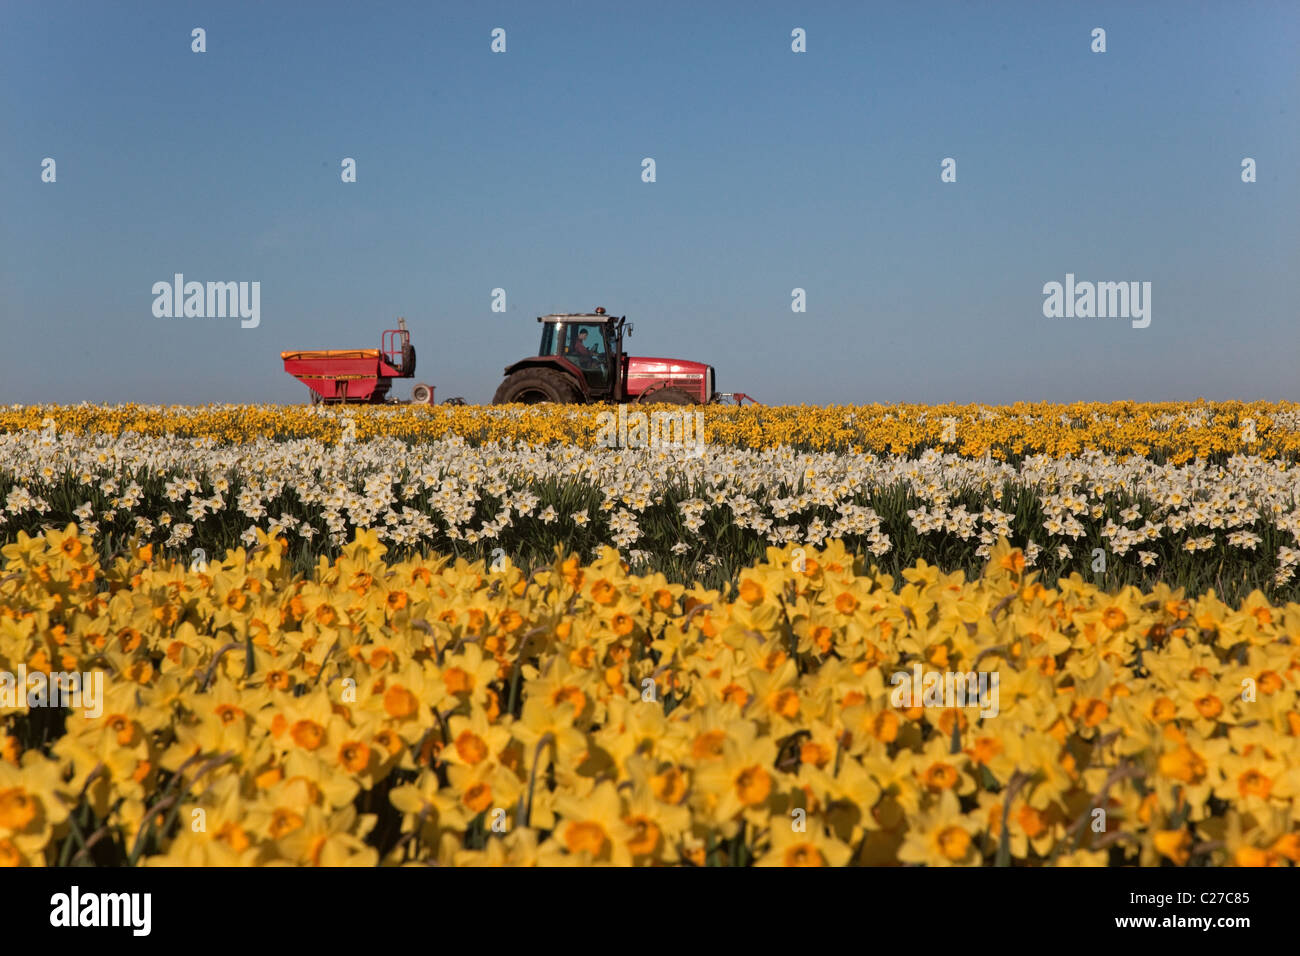 Commercially grown daffodils for the Easter cut flower market and tractor spreading fertilizer in next field - Stock Image